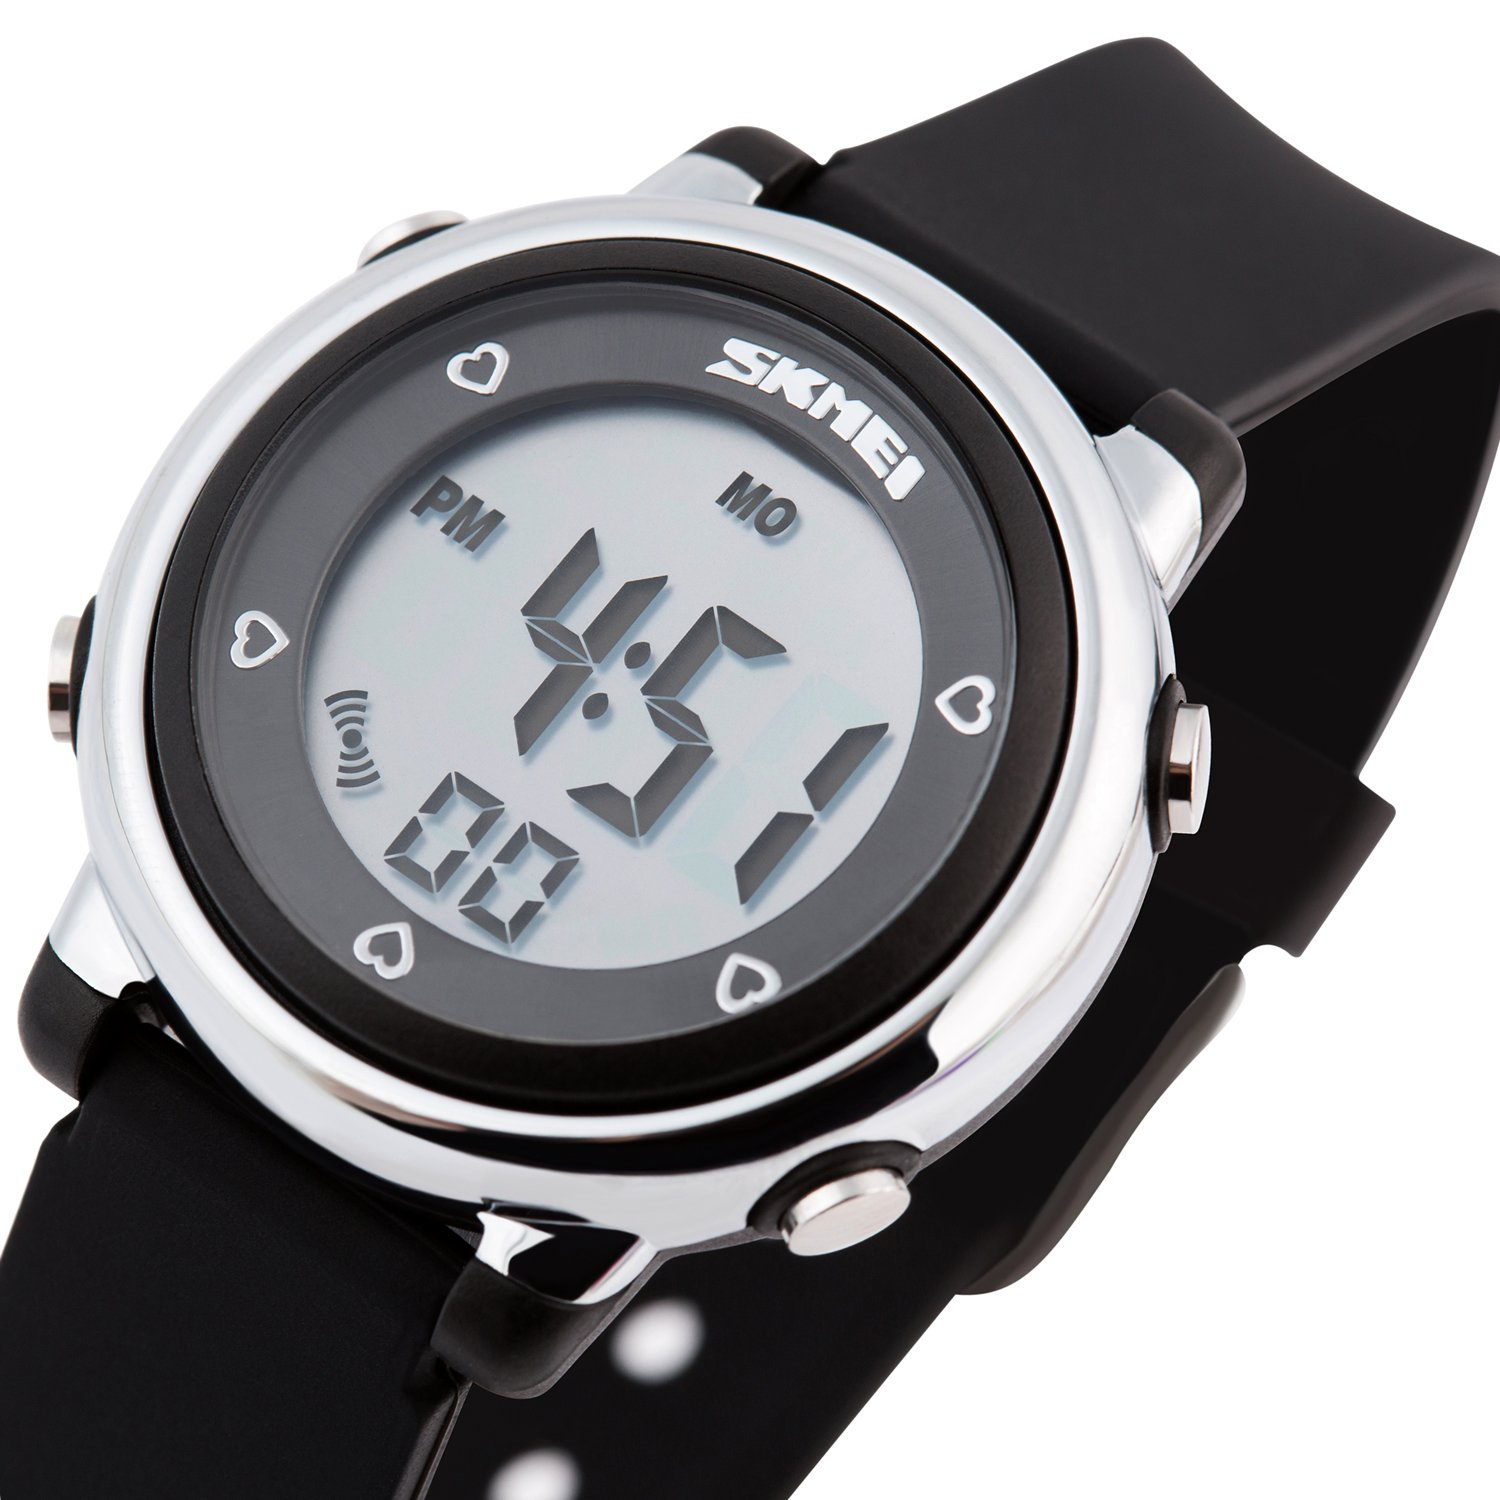 Better line Digital Kids Watch Band with Hourly Chime, Stopwatch, Daily Alarm & Calendar, Water Resistant 30M (Black)